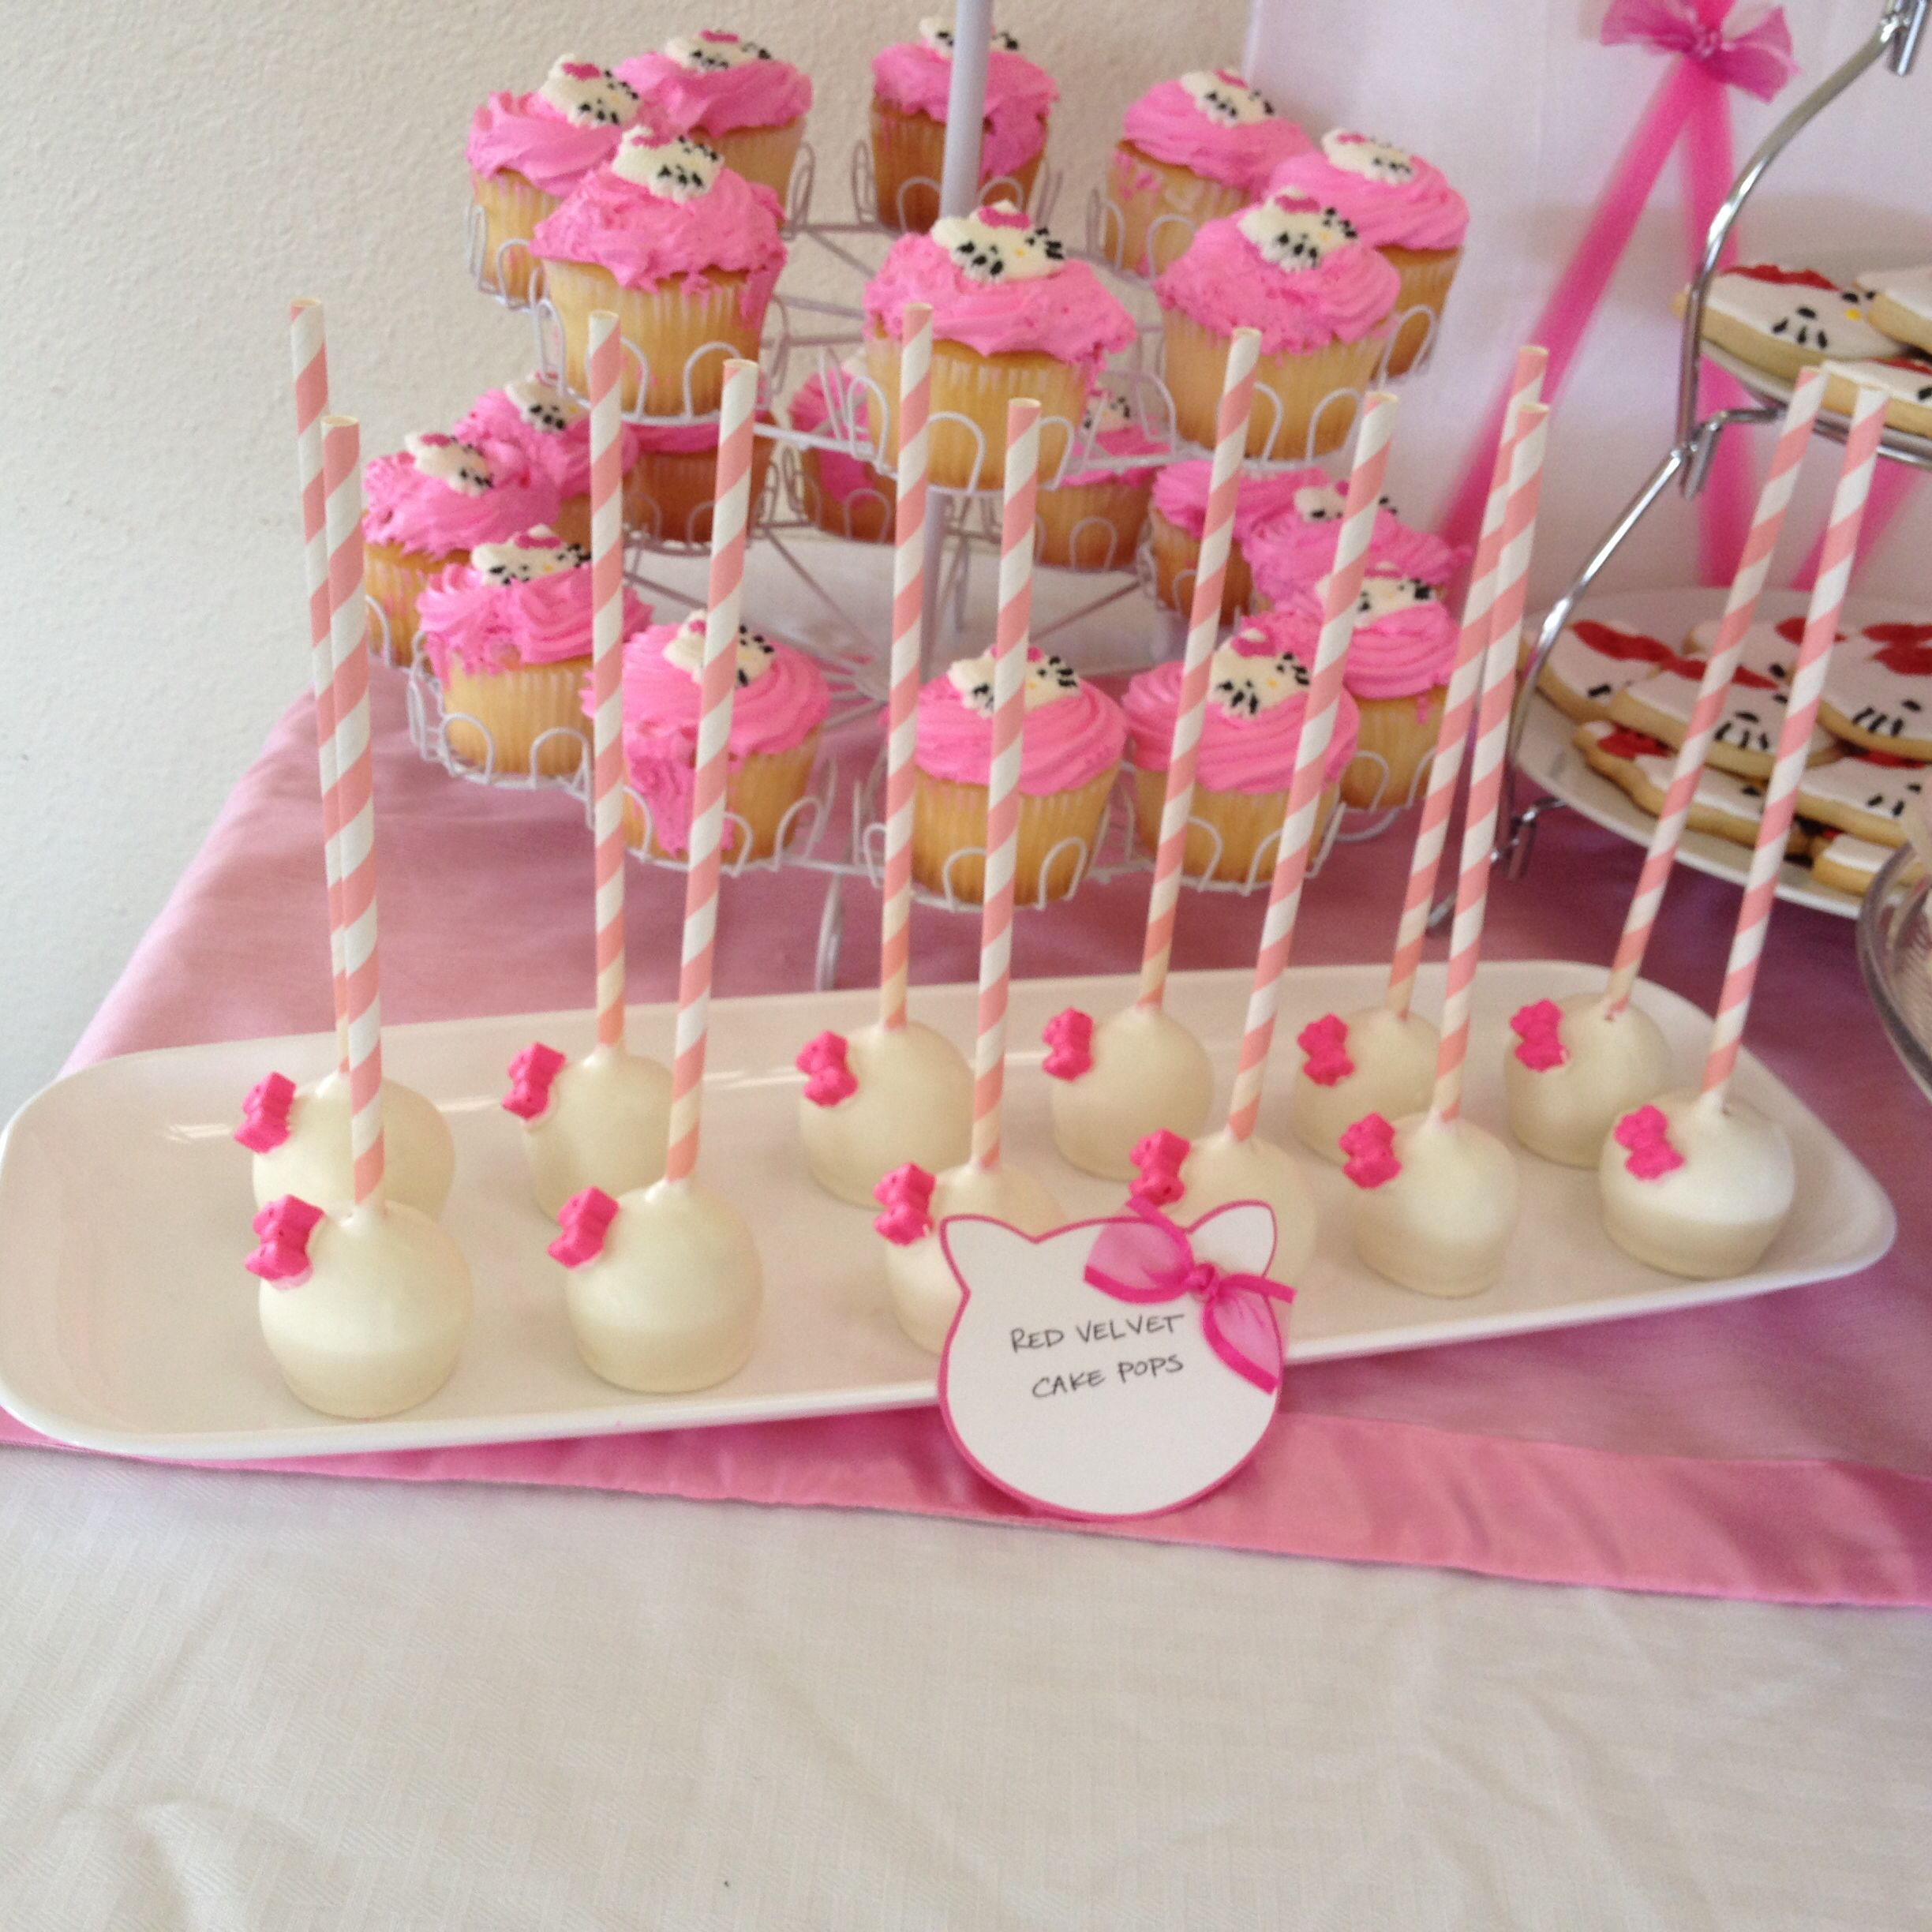 Cake pops for hello kitty baby shower dessert table Hello Kitty